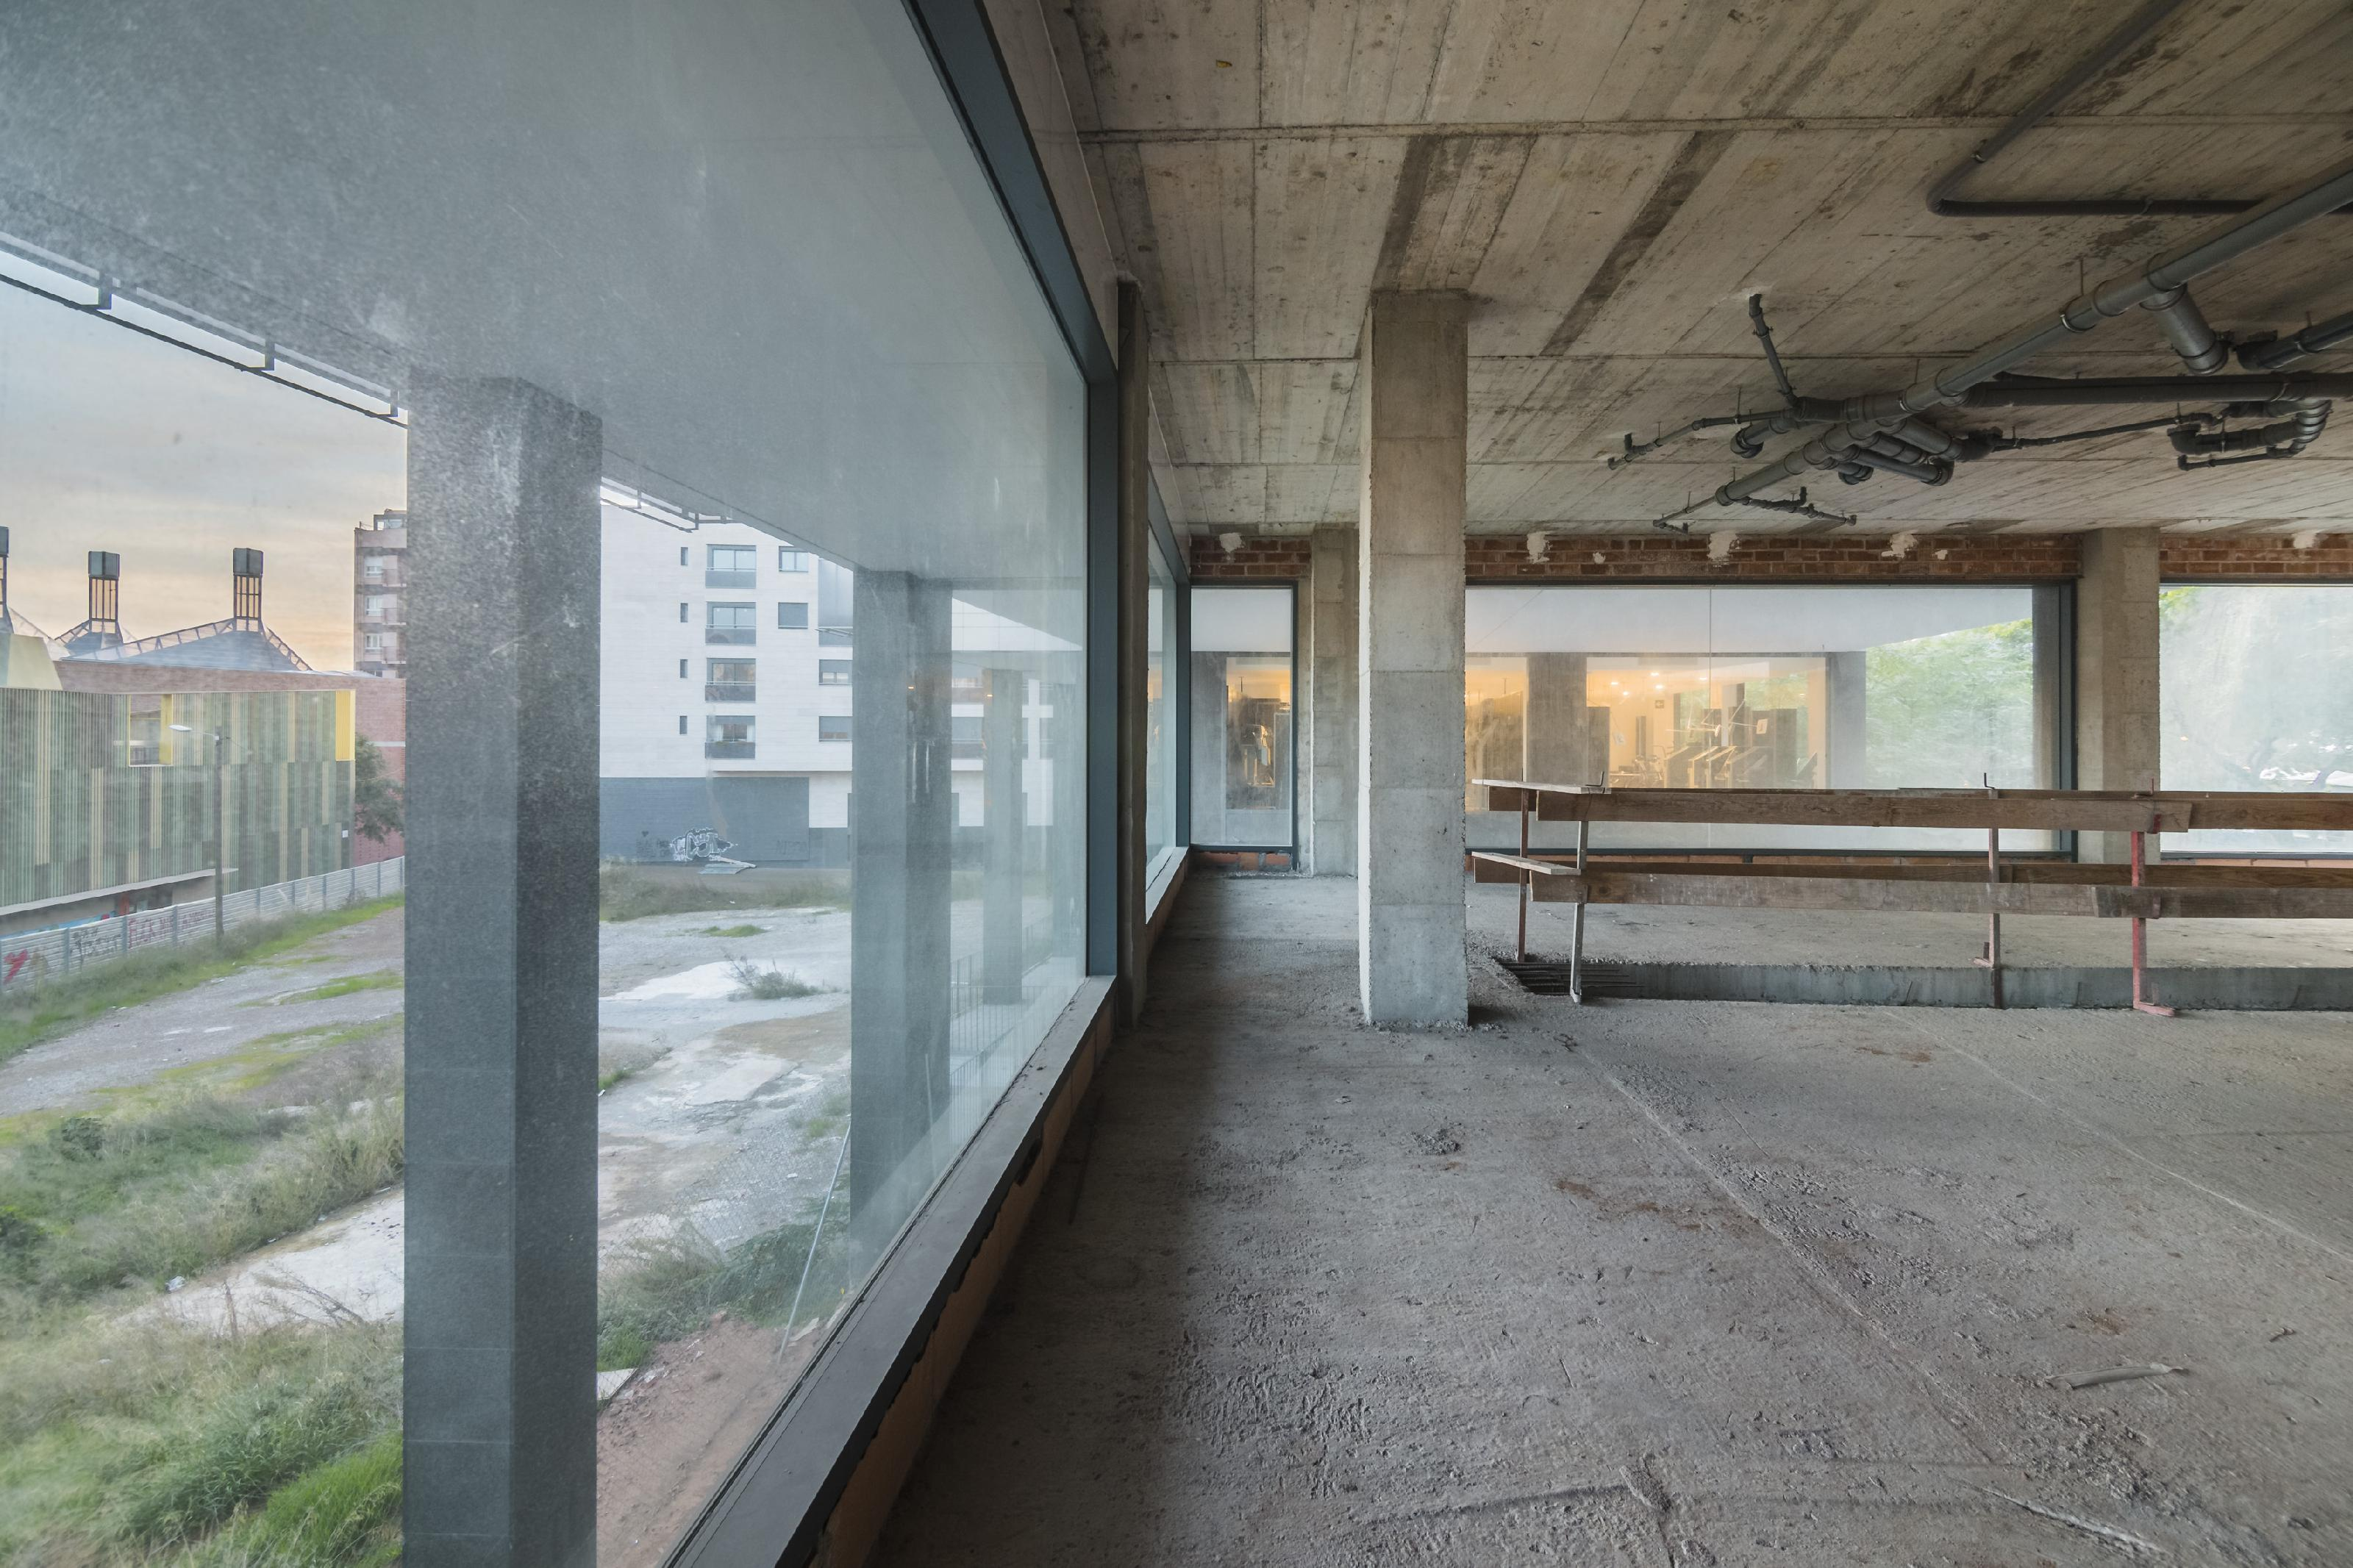 208066 Commercial Premises for sale in Les Corts, Les Corts 13